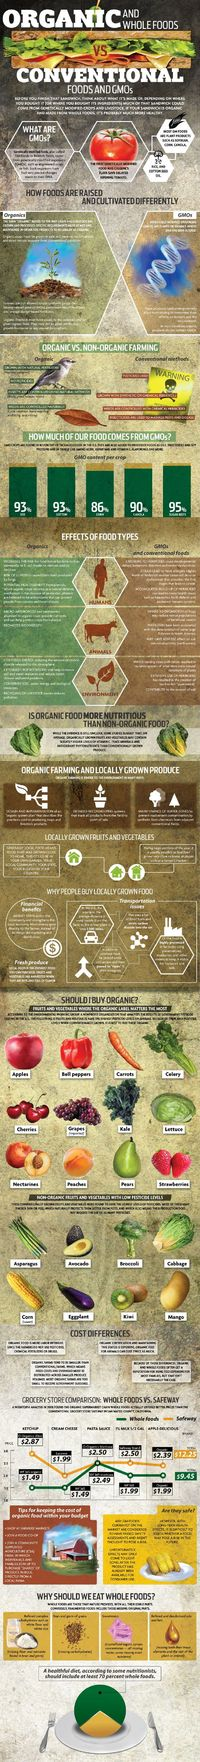 Catch up on all the need-to-know info on GMOs with this round-up of useful infographics.